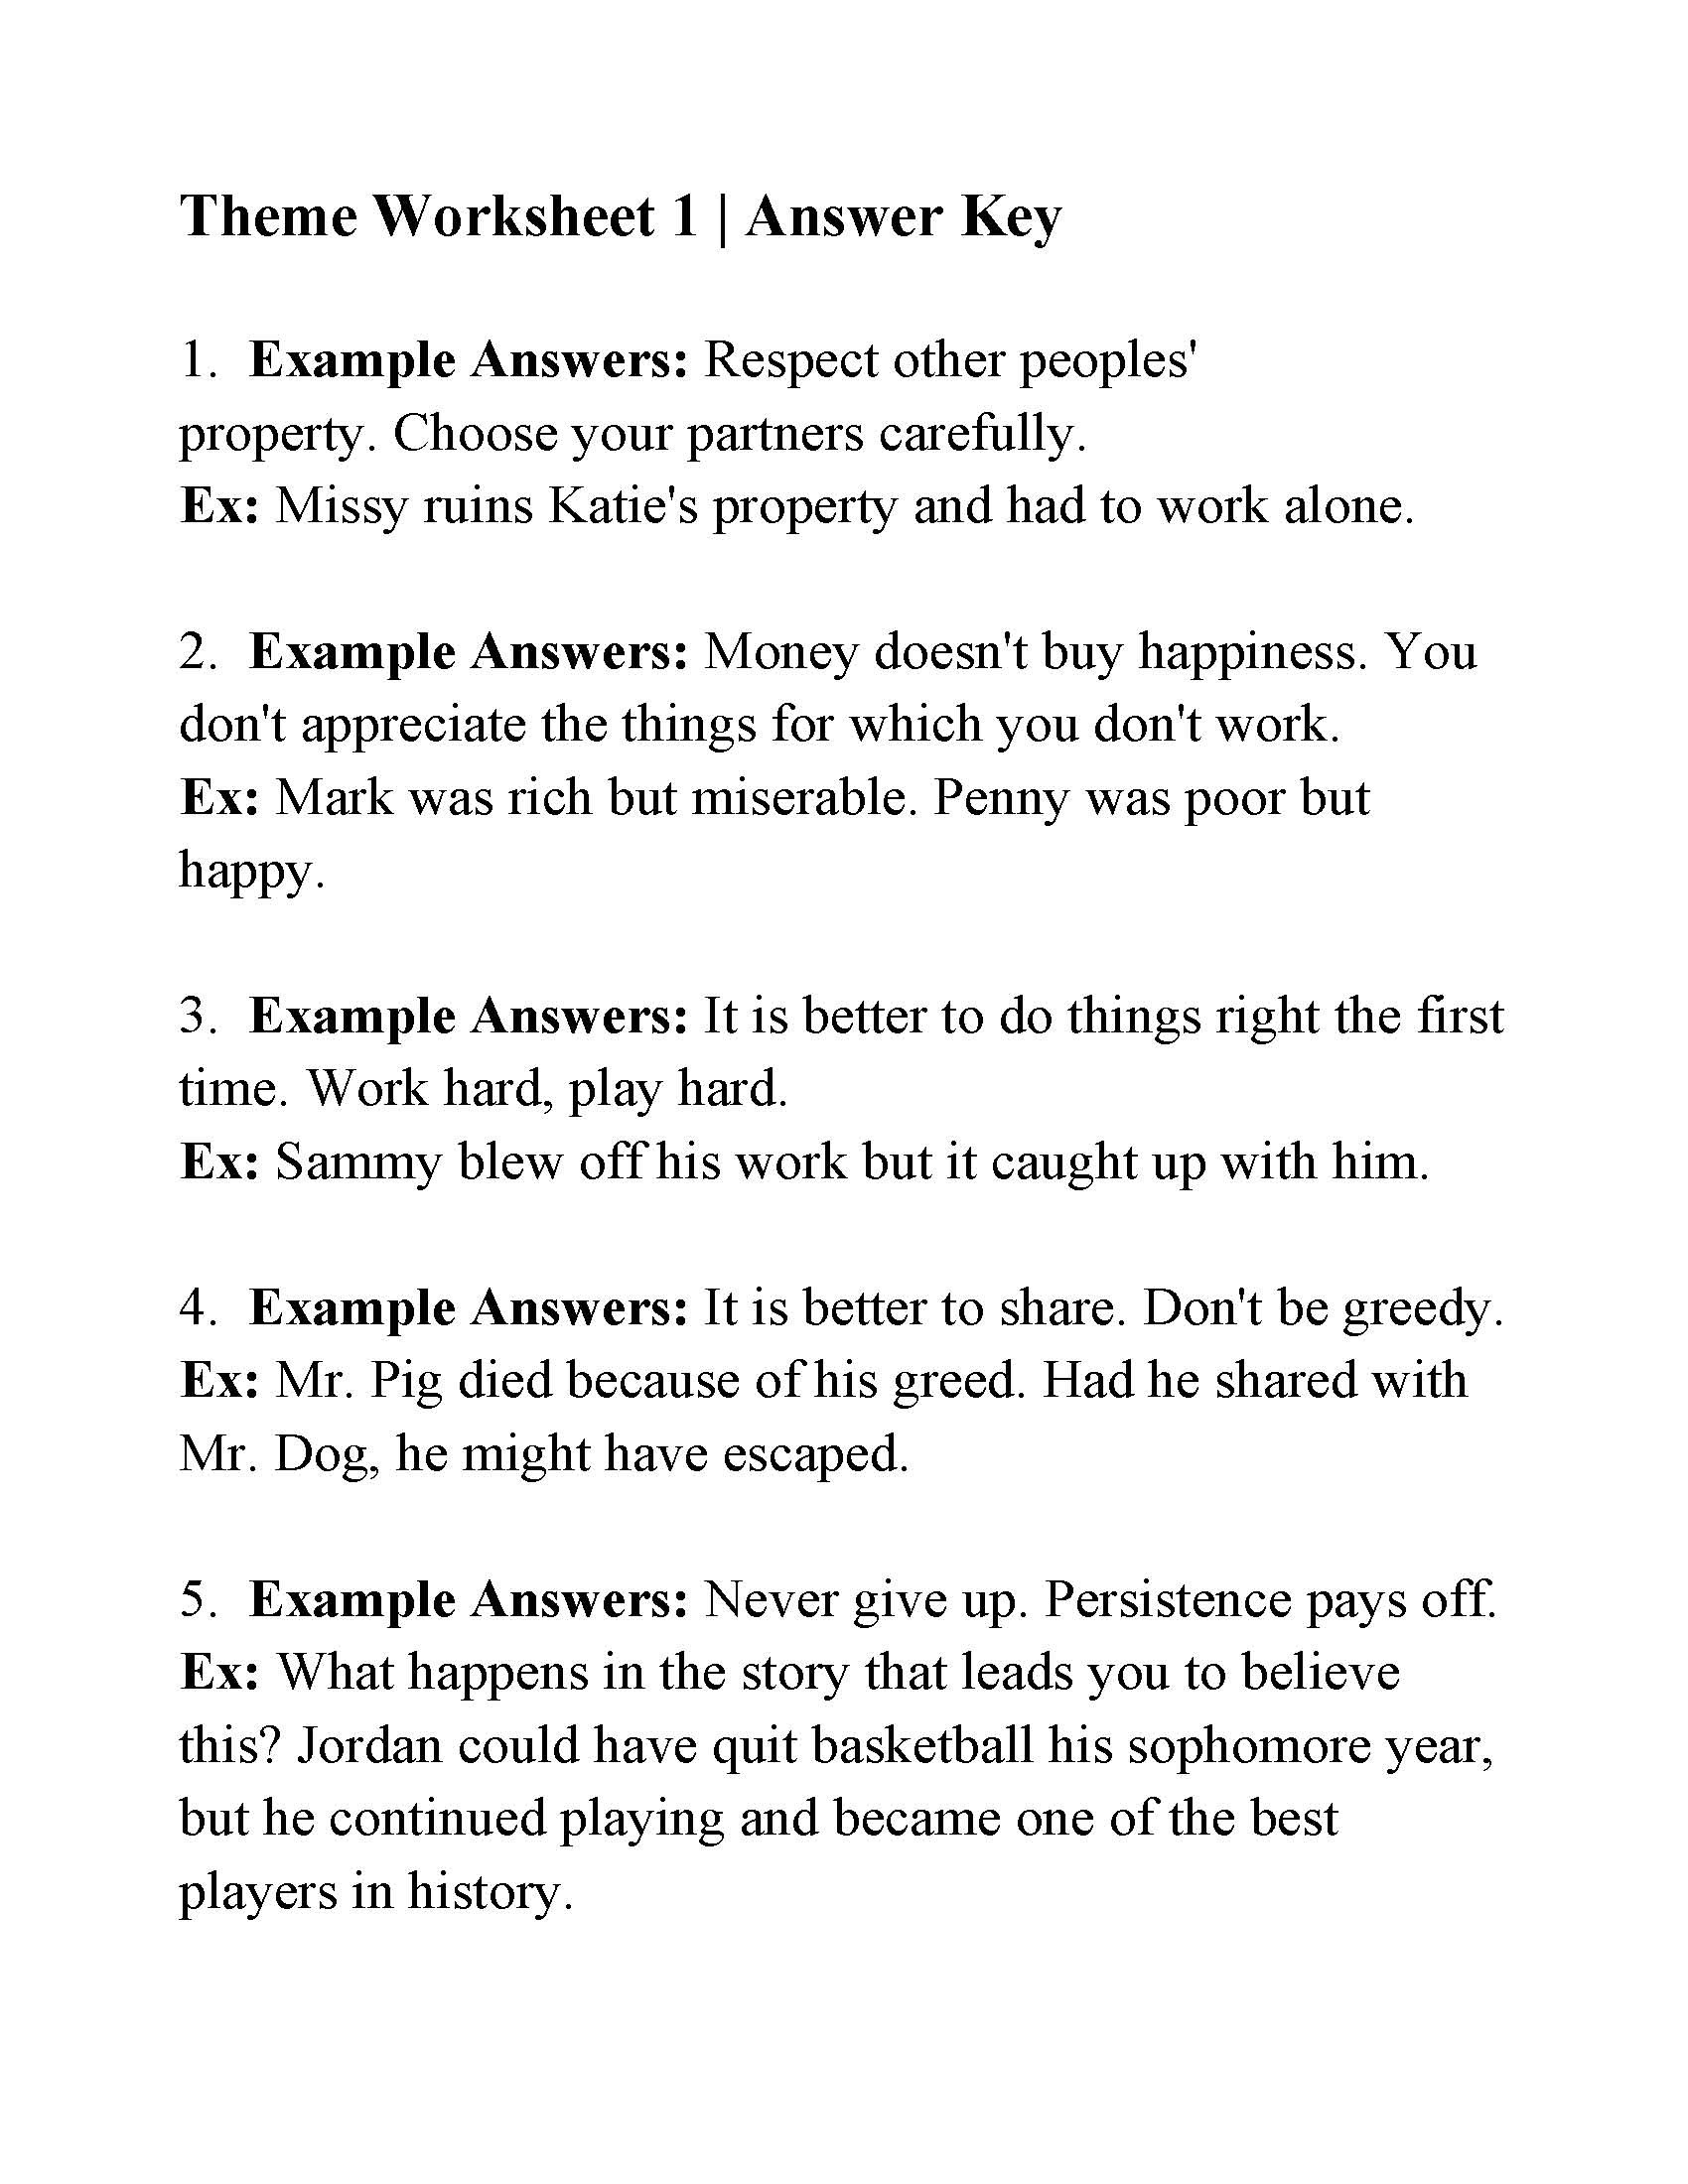 Theme Worksheet Grade 4 theme Worksheet 1